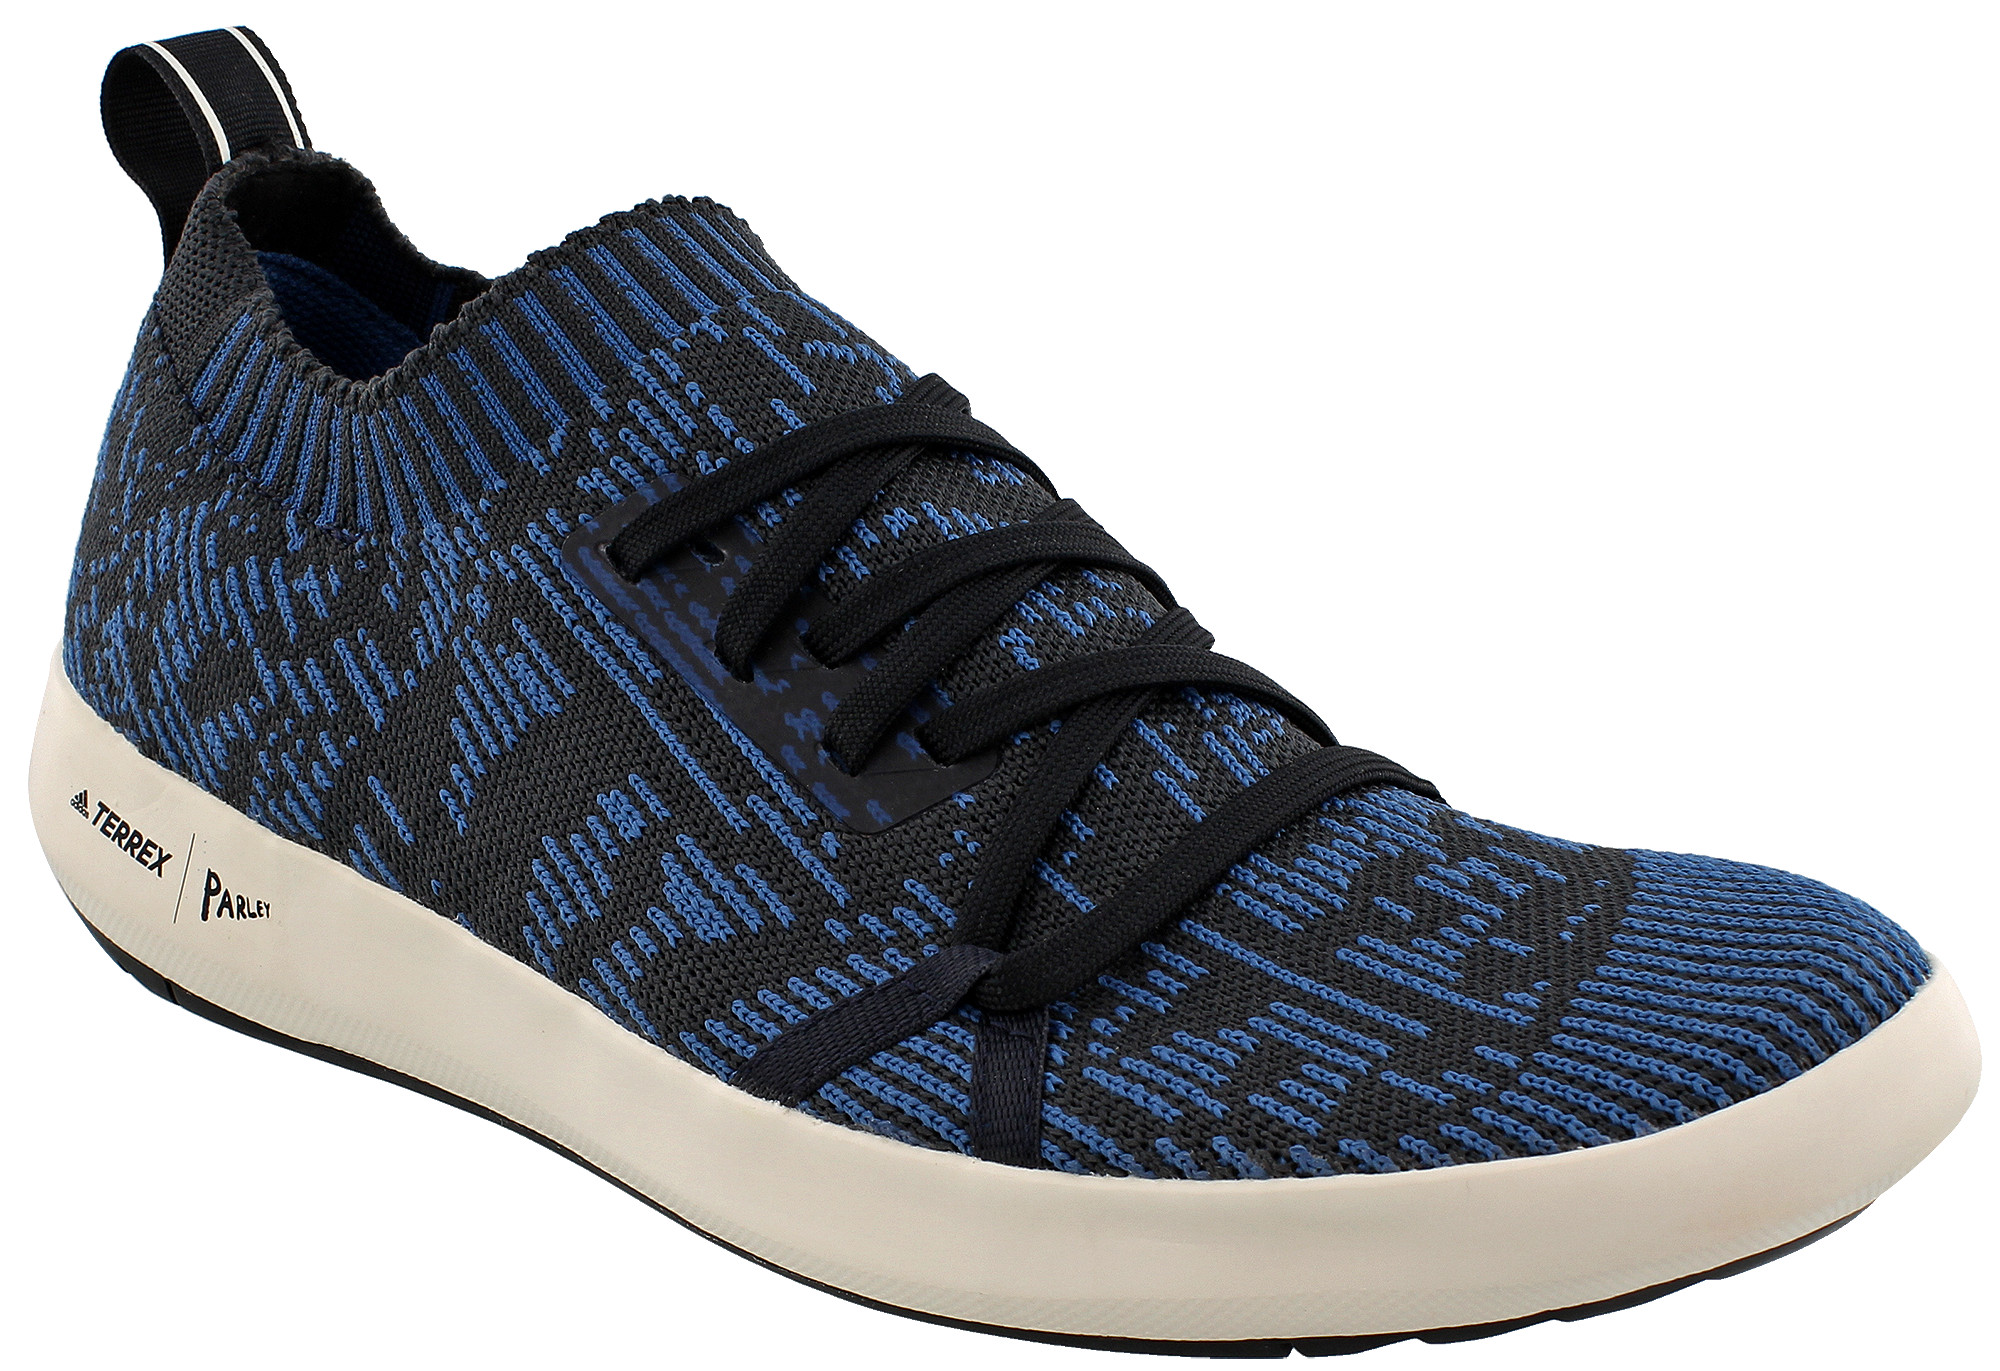 low cost d1255 5a5e0 Adidas Outdoor Terrex Parley Climacool Boat Watersport Shoe - Men's